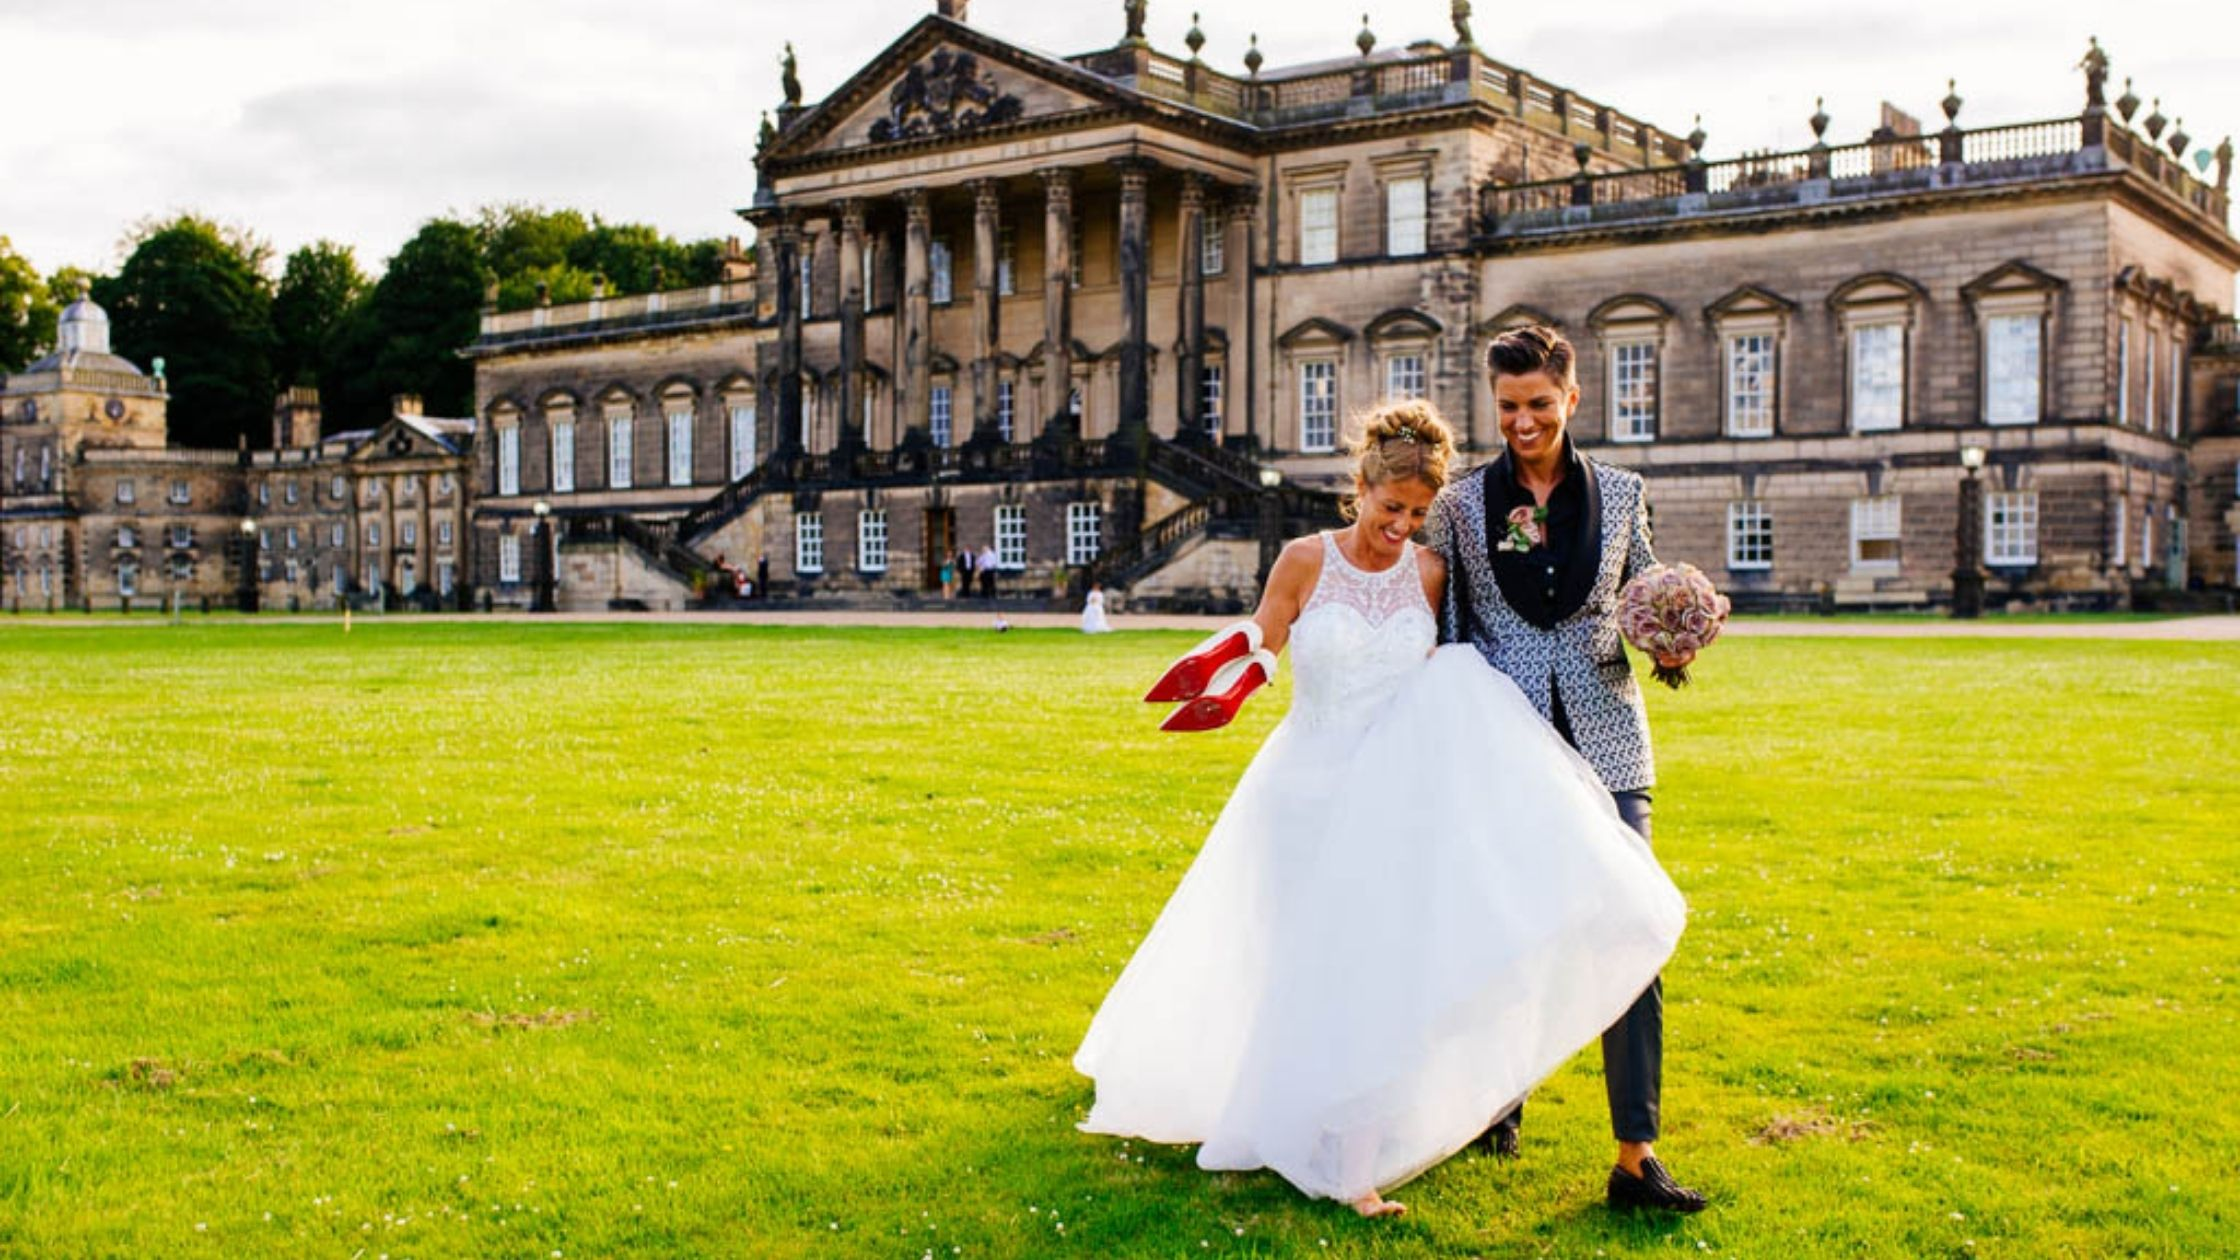 The Wedding of Kerry & Mirja at Wentworth Woodhouse